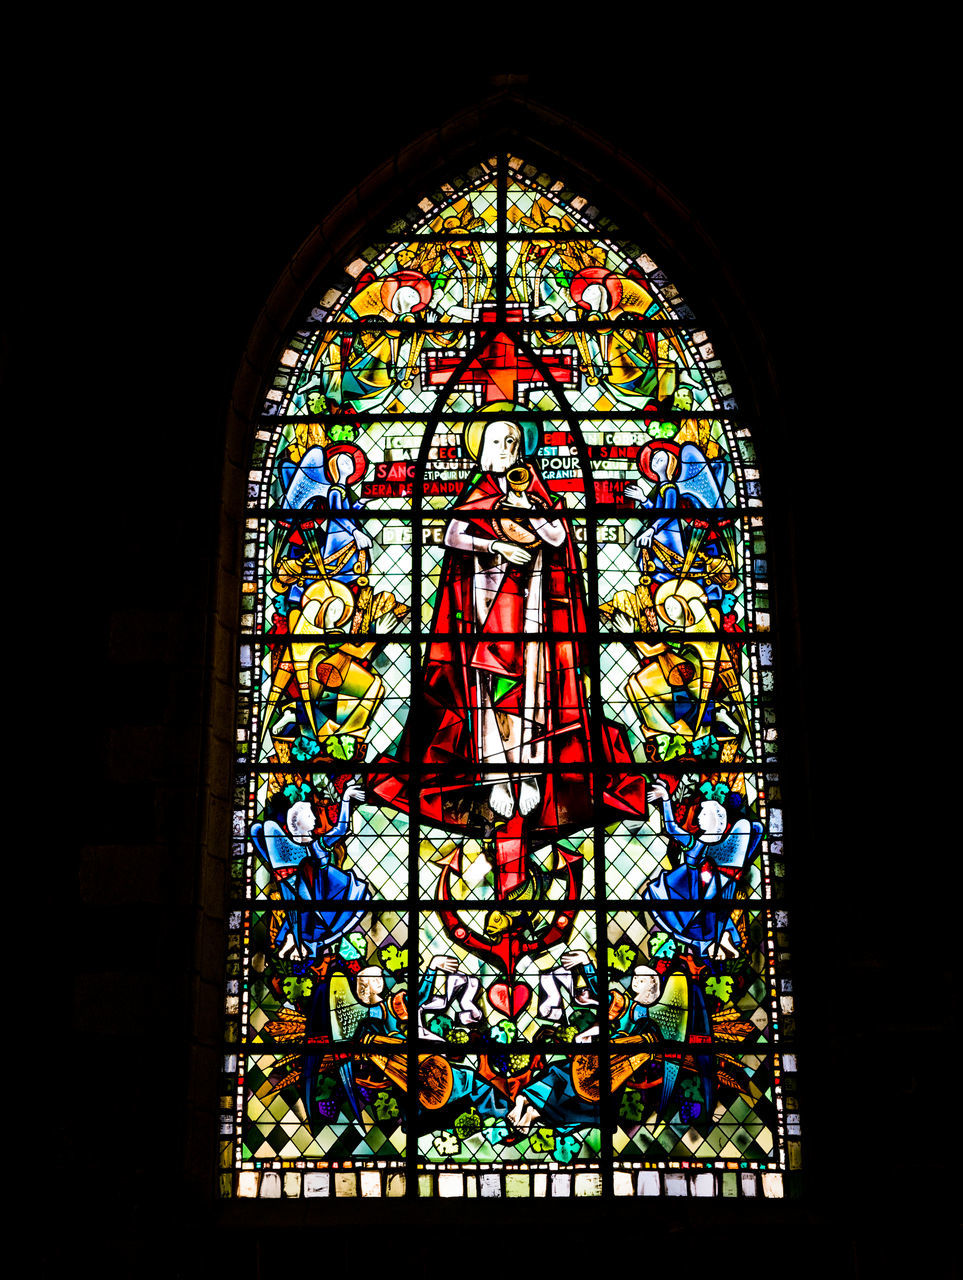 stained glass, glass, window, glass - material, multi colored, art and craft, place of worship, creativity, religion, spirituality, belief, indoors, design, pattern, built structure, architecture, no people, building, ornate, floral pattern